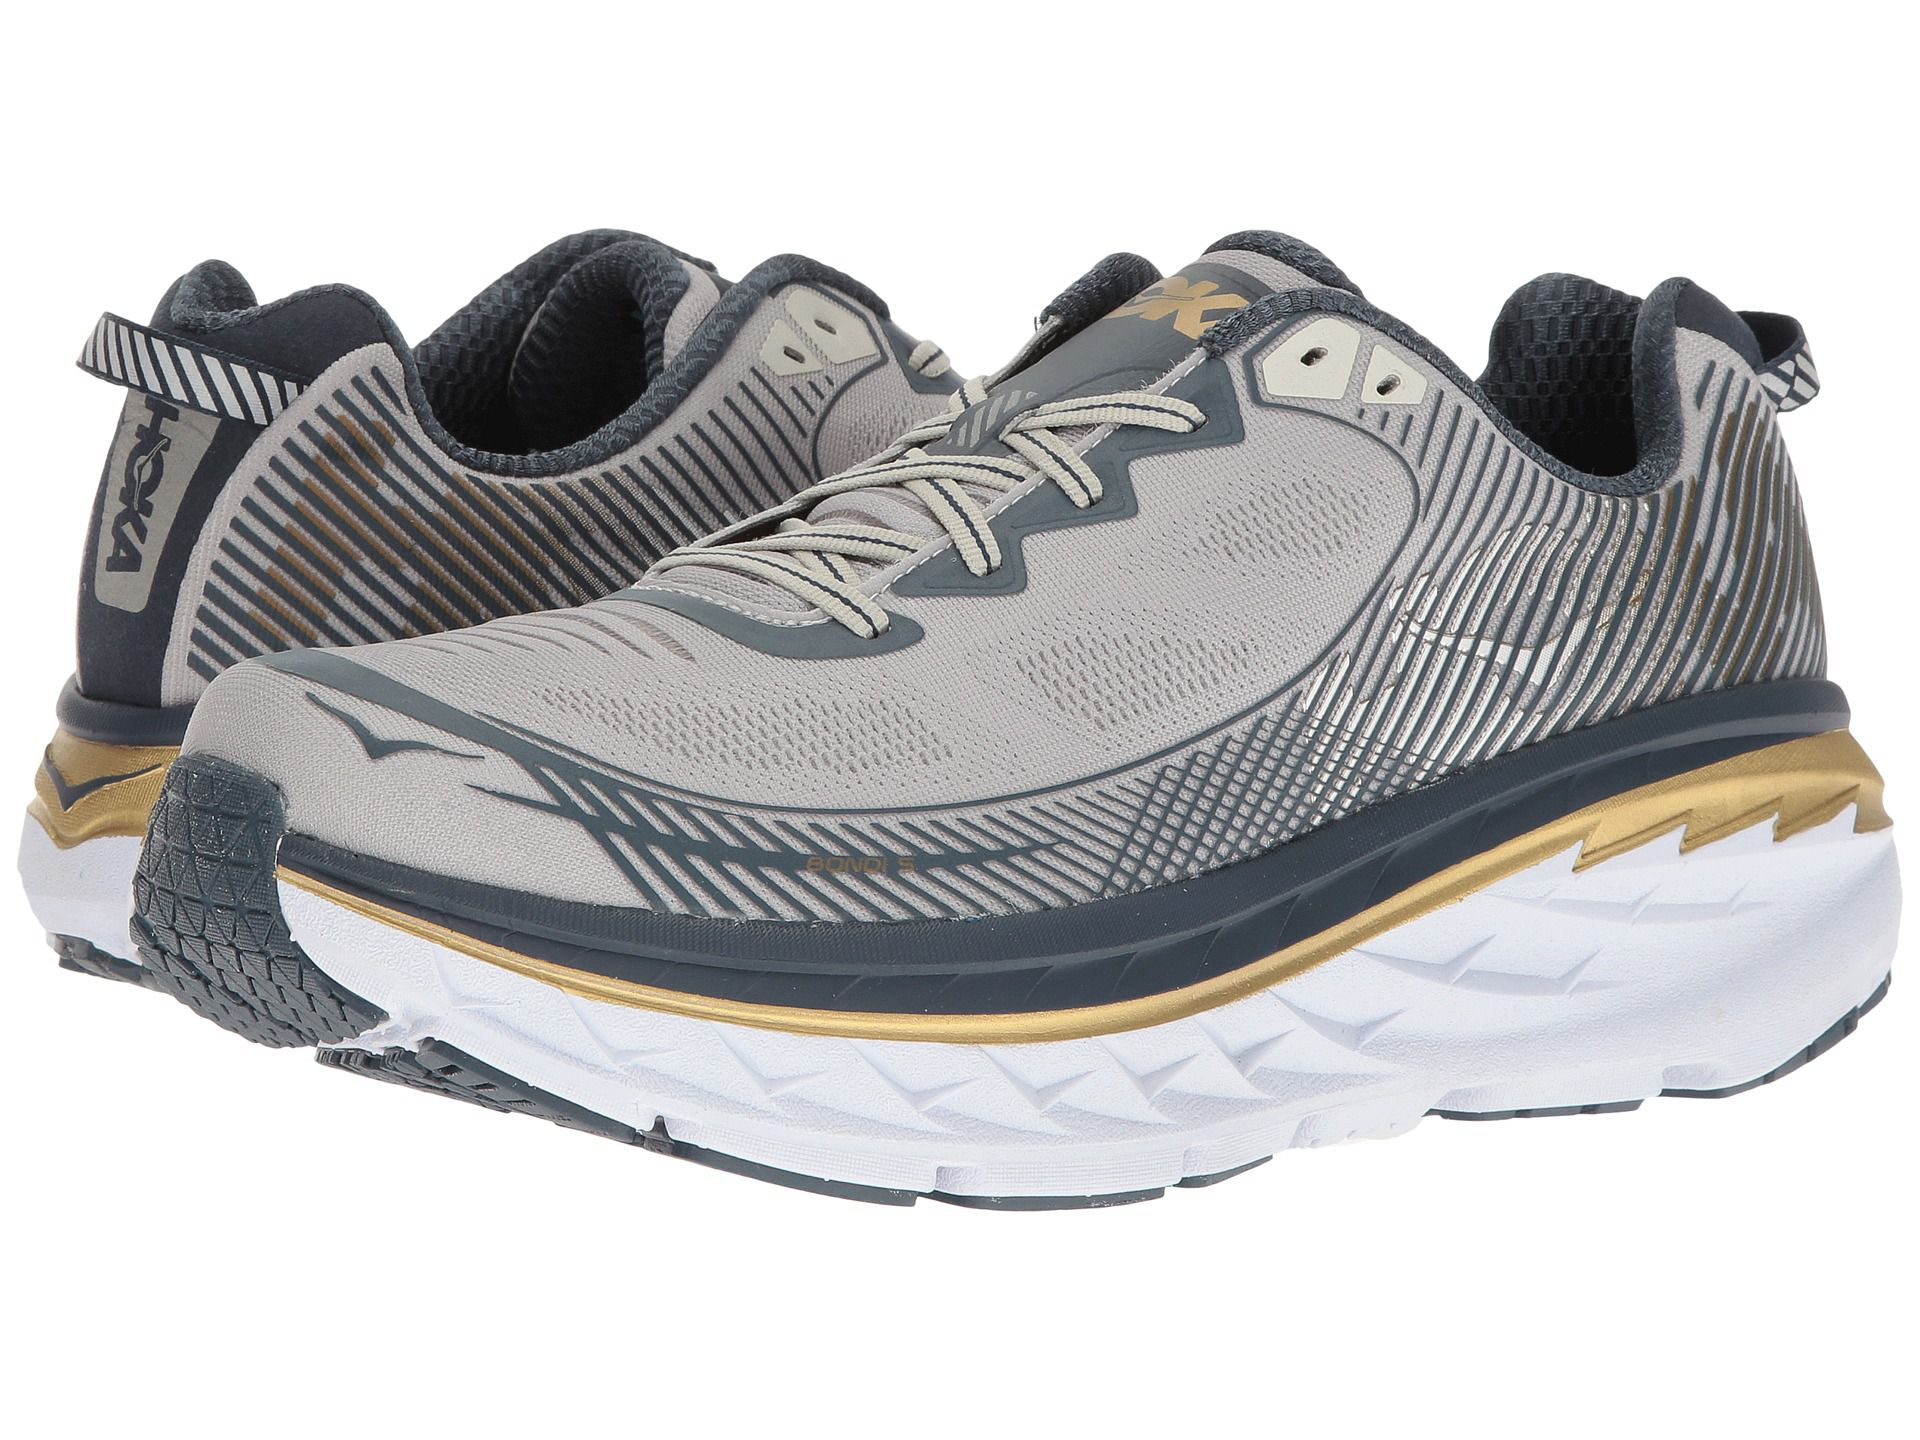 The 8 Best Cushioned Running Shoes for Men to Buy in 2018